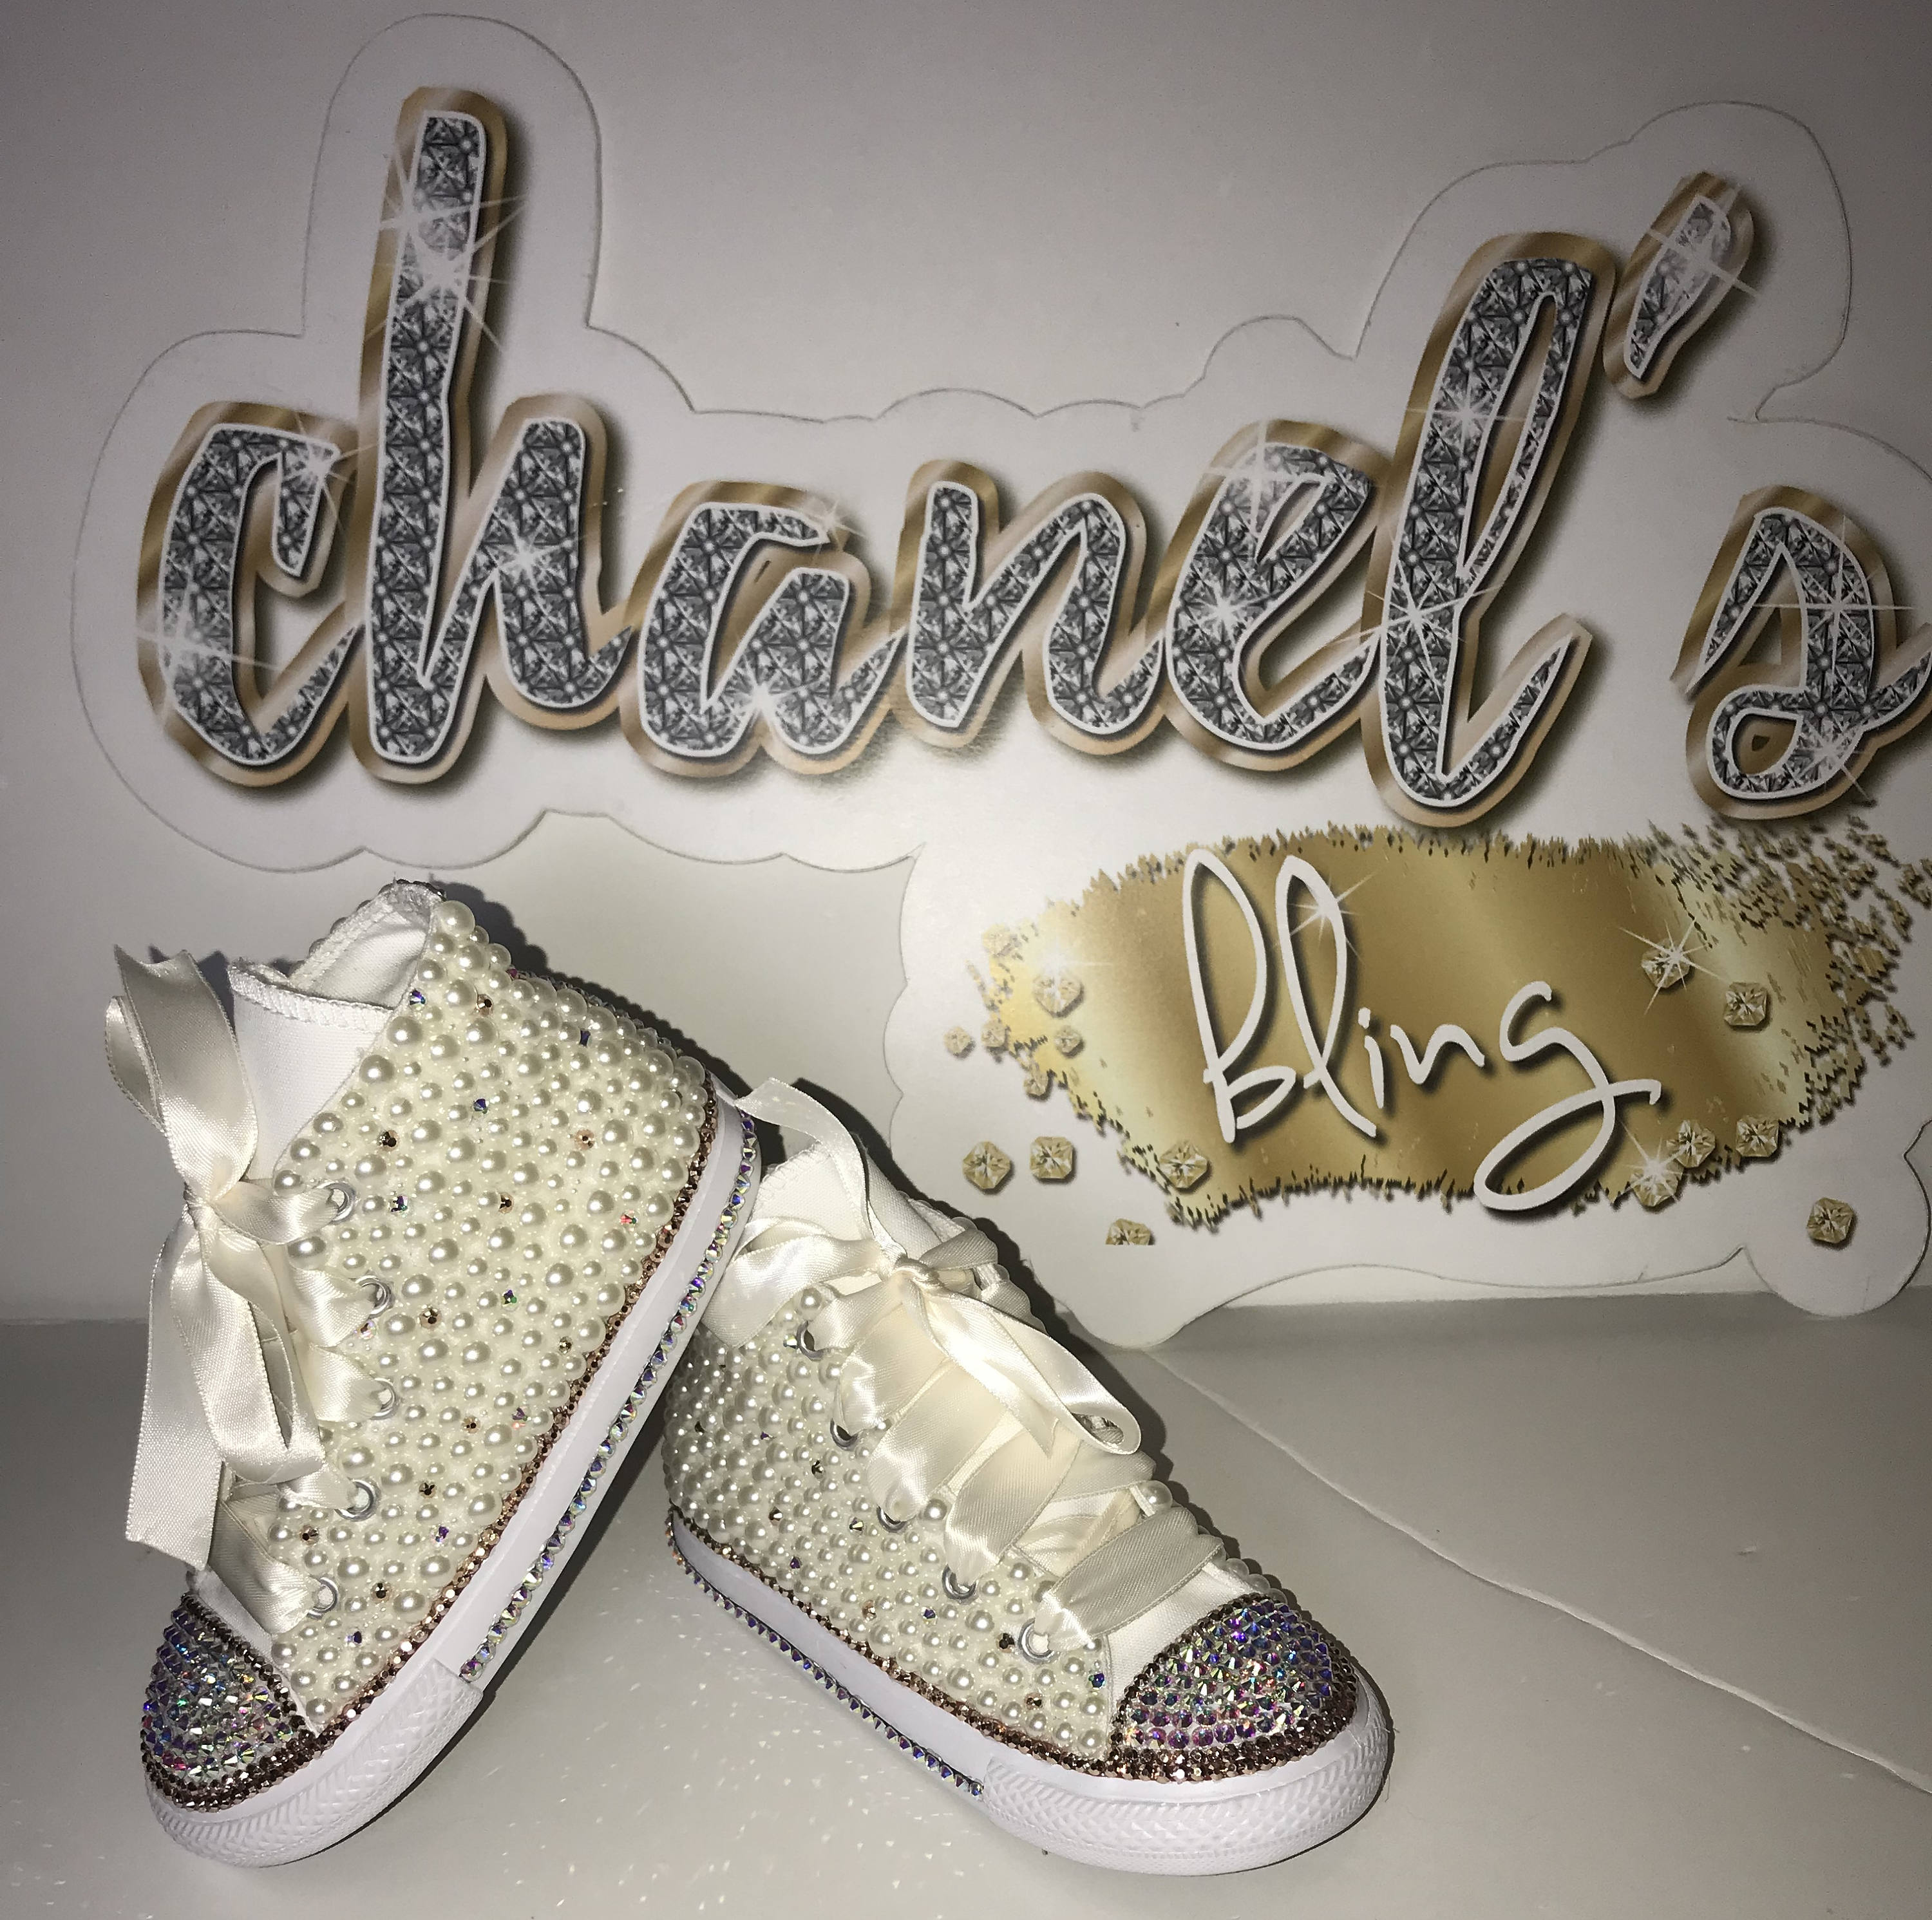 e1480732c7812 KIDS Off White/Rose Gold Bling Converse All Star Chuck Taylor Sneakers  High-Top